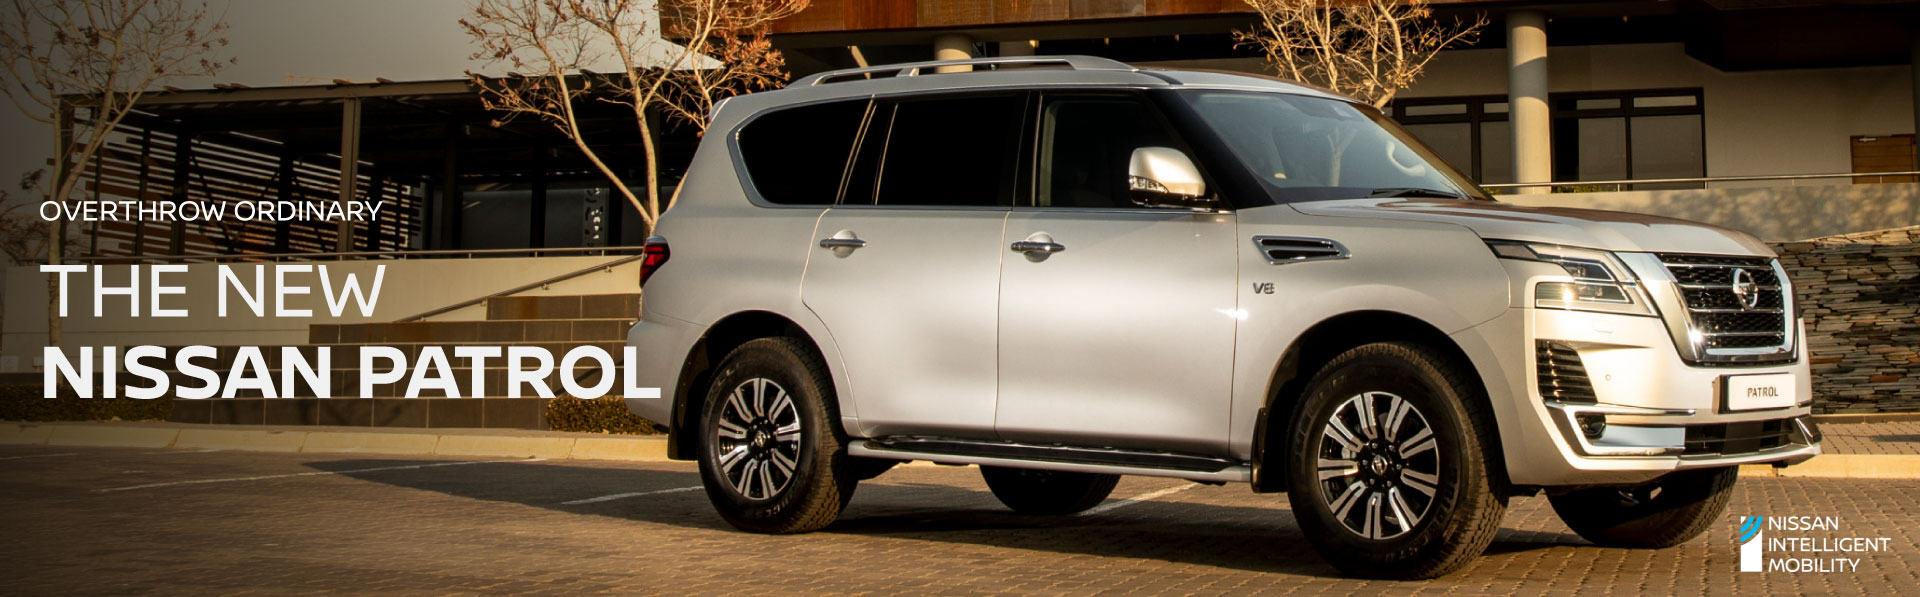 all-new-nissan-patrol-arriving-soon